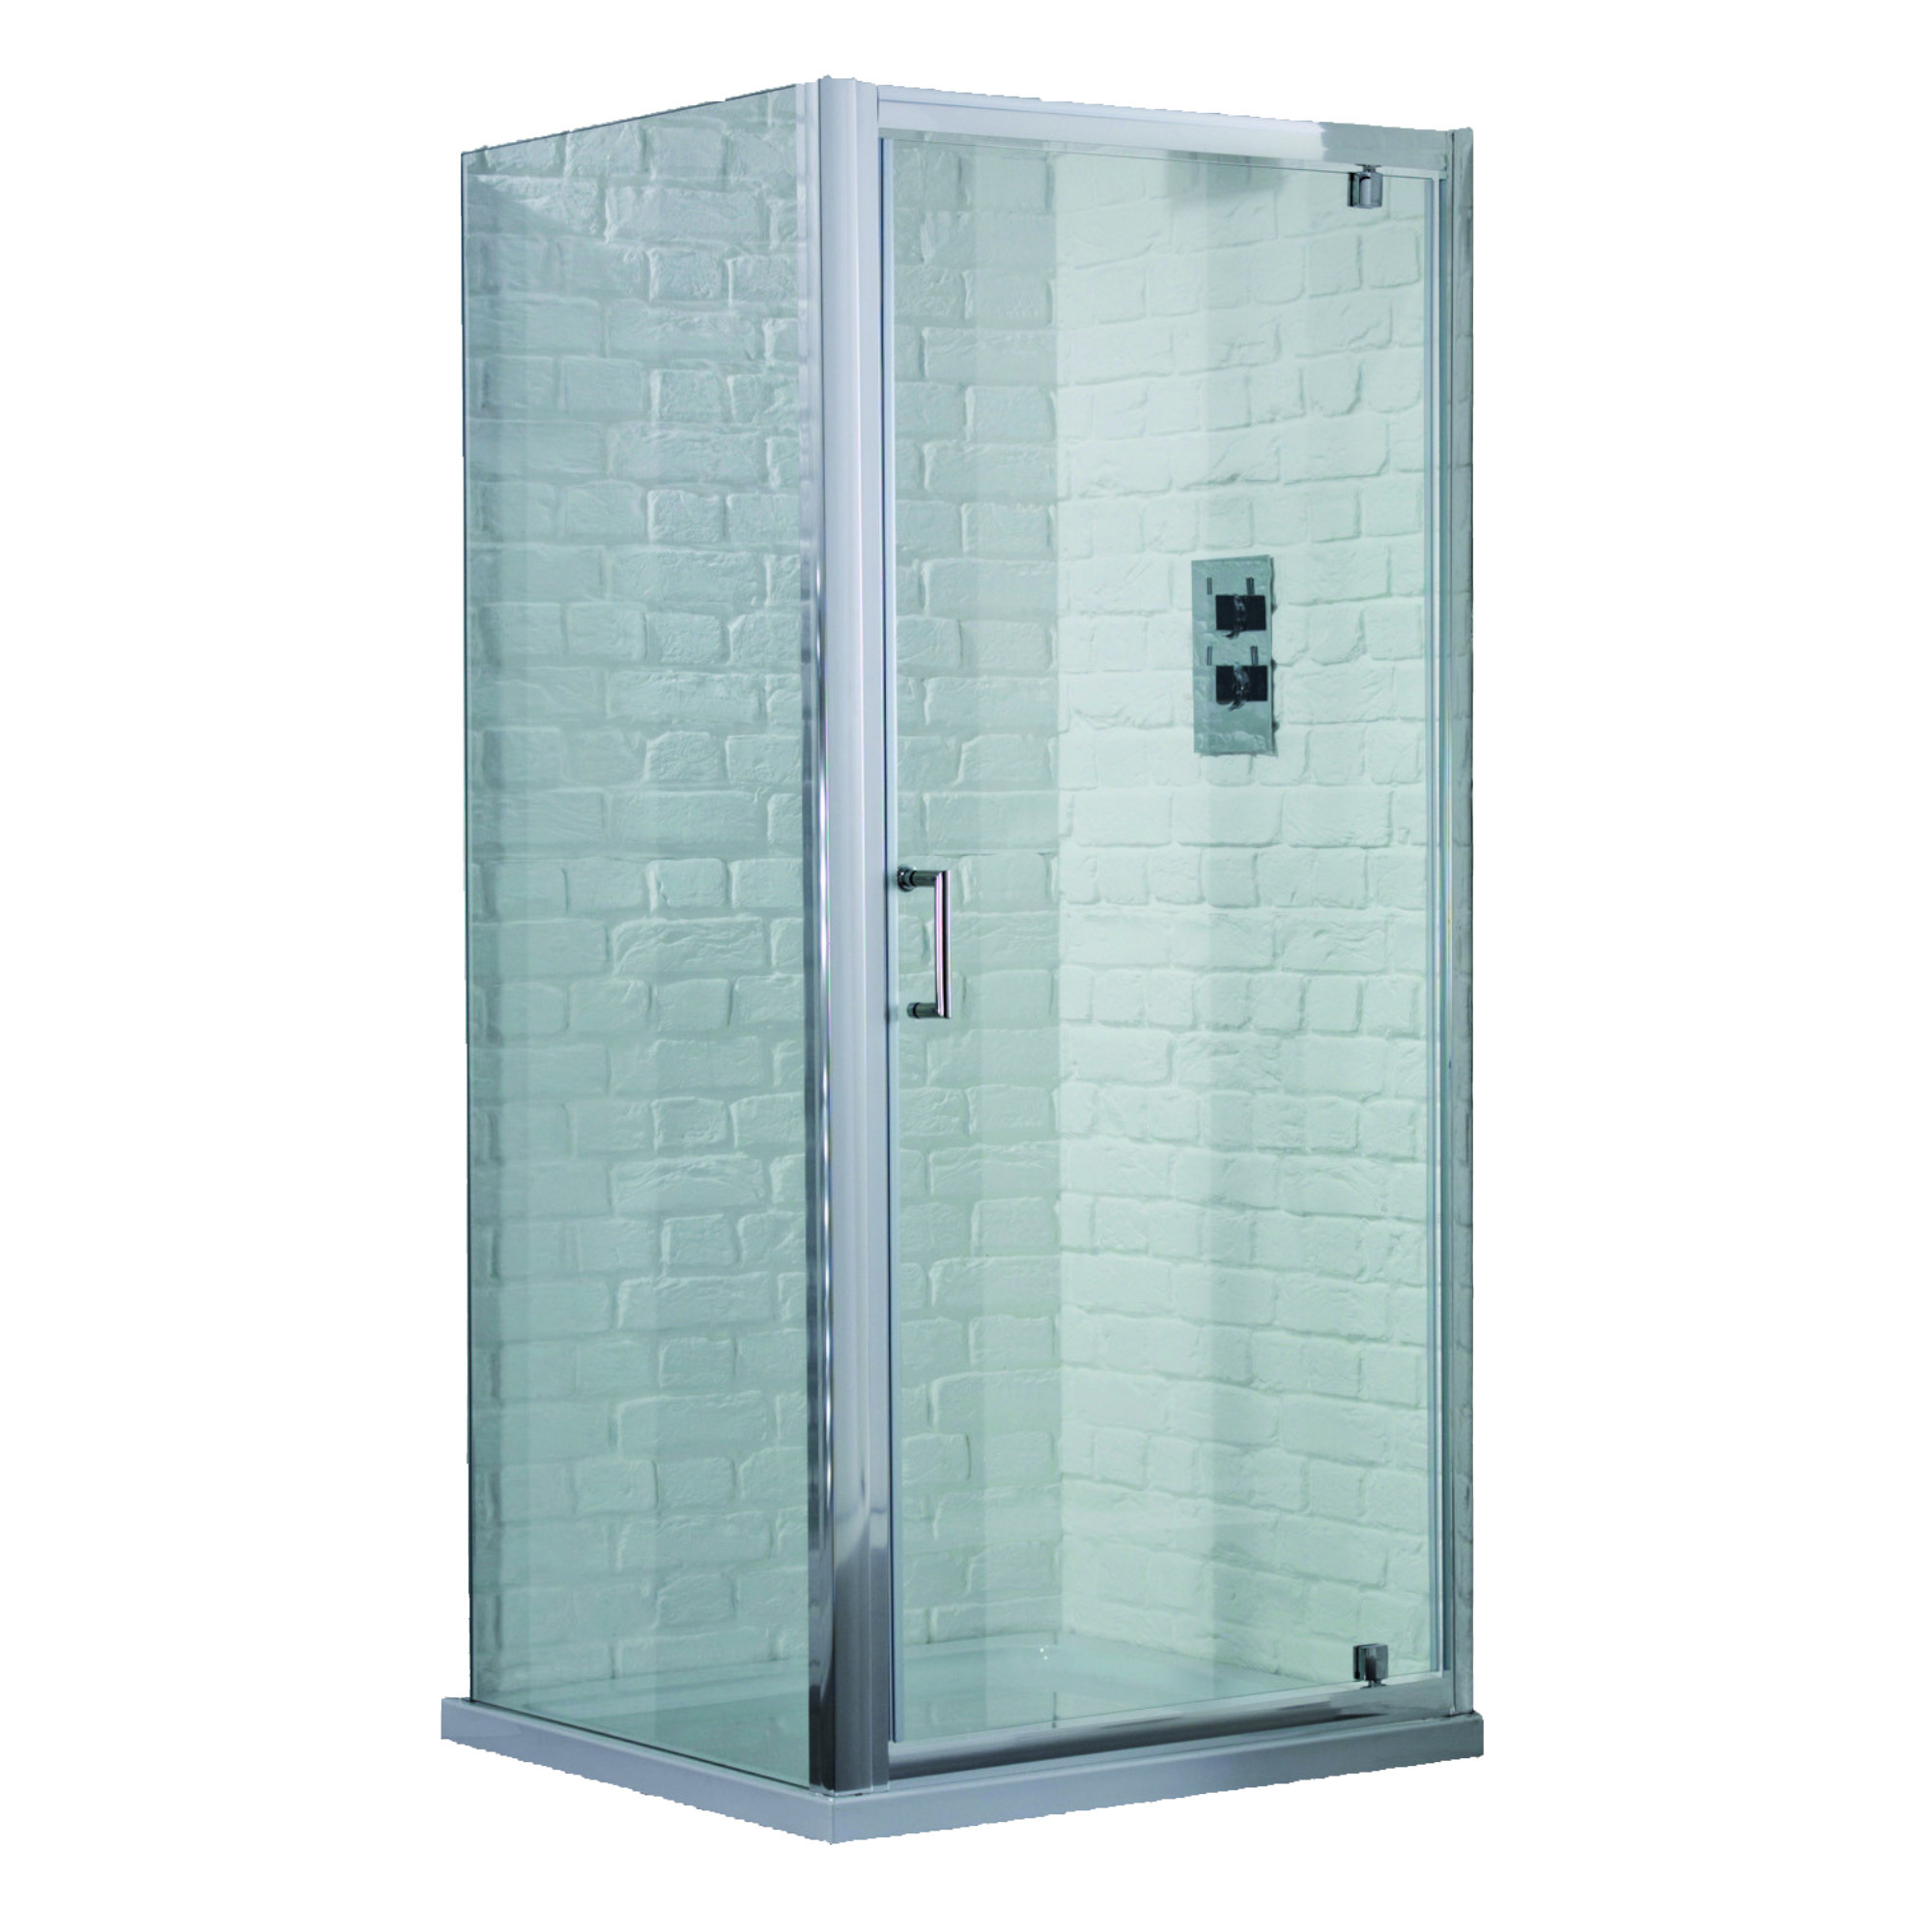 Featured Category Shower Enclosures Desktop/ Mobile